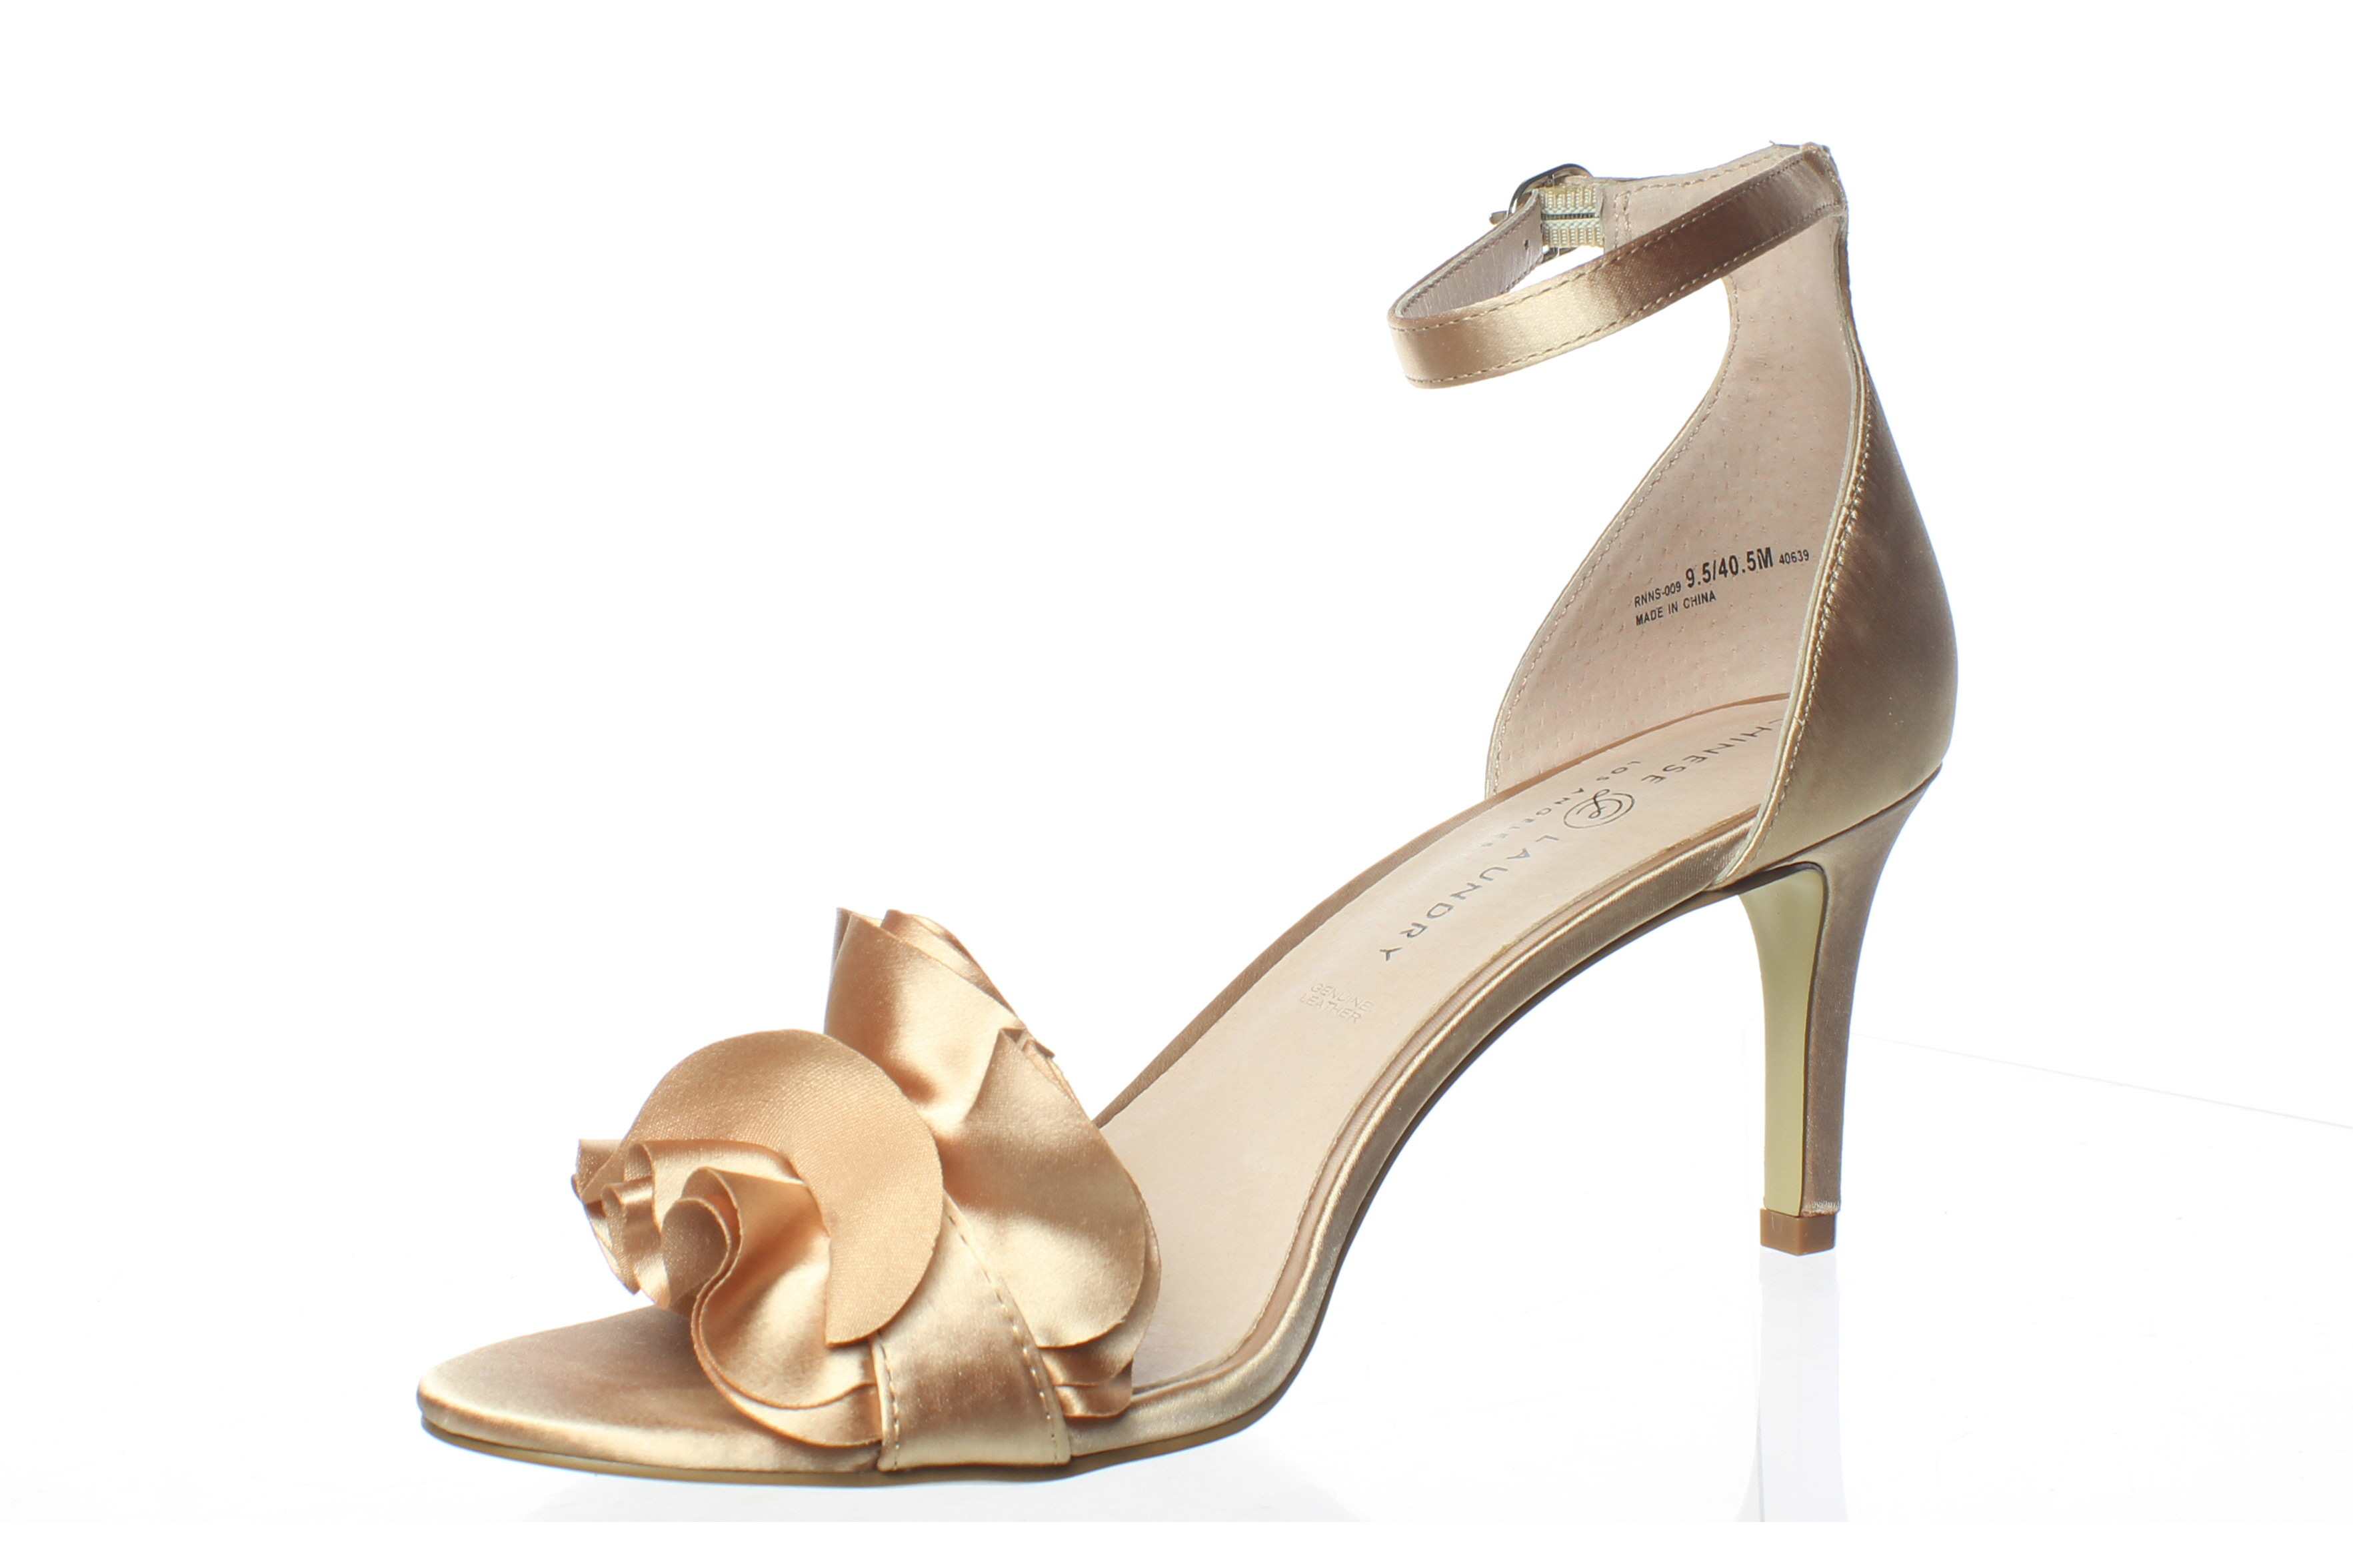 Chinese Laundry Womens Remmy Nude Satin Ankle Strap Heels